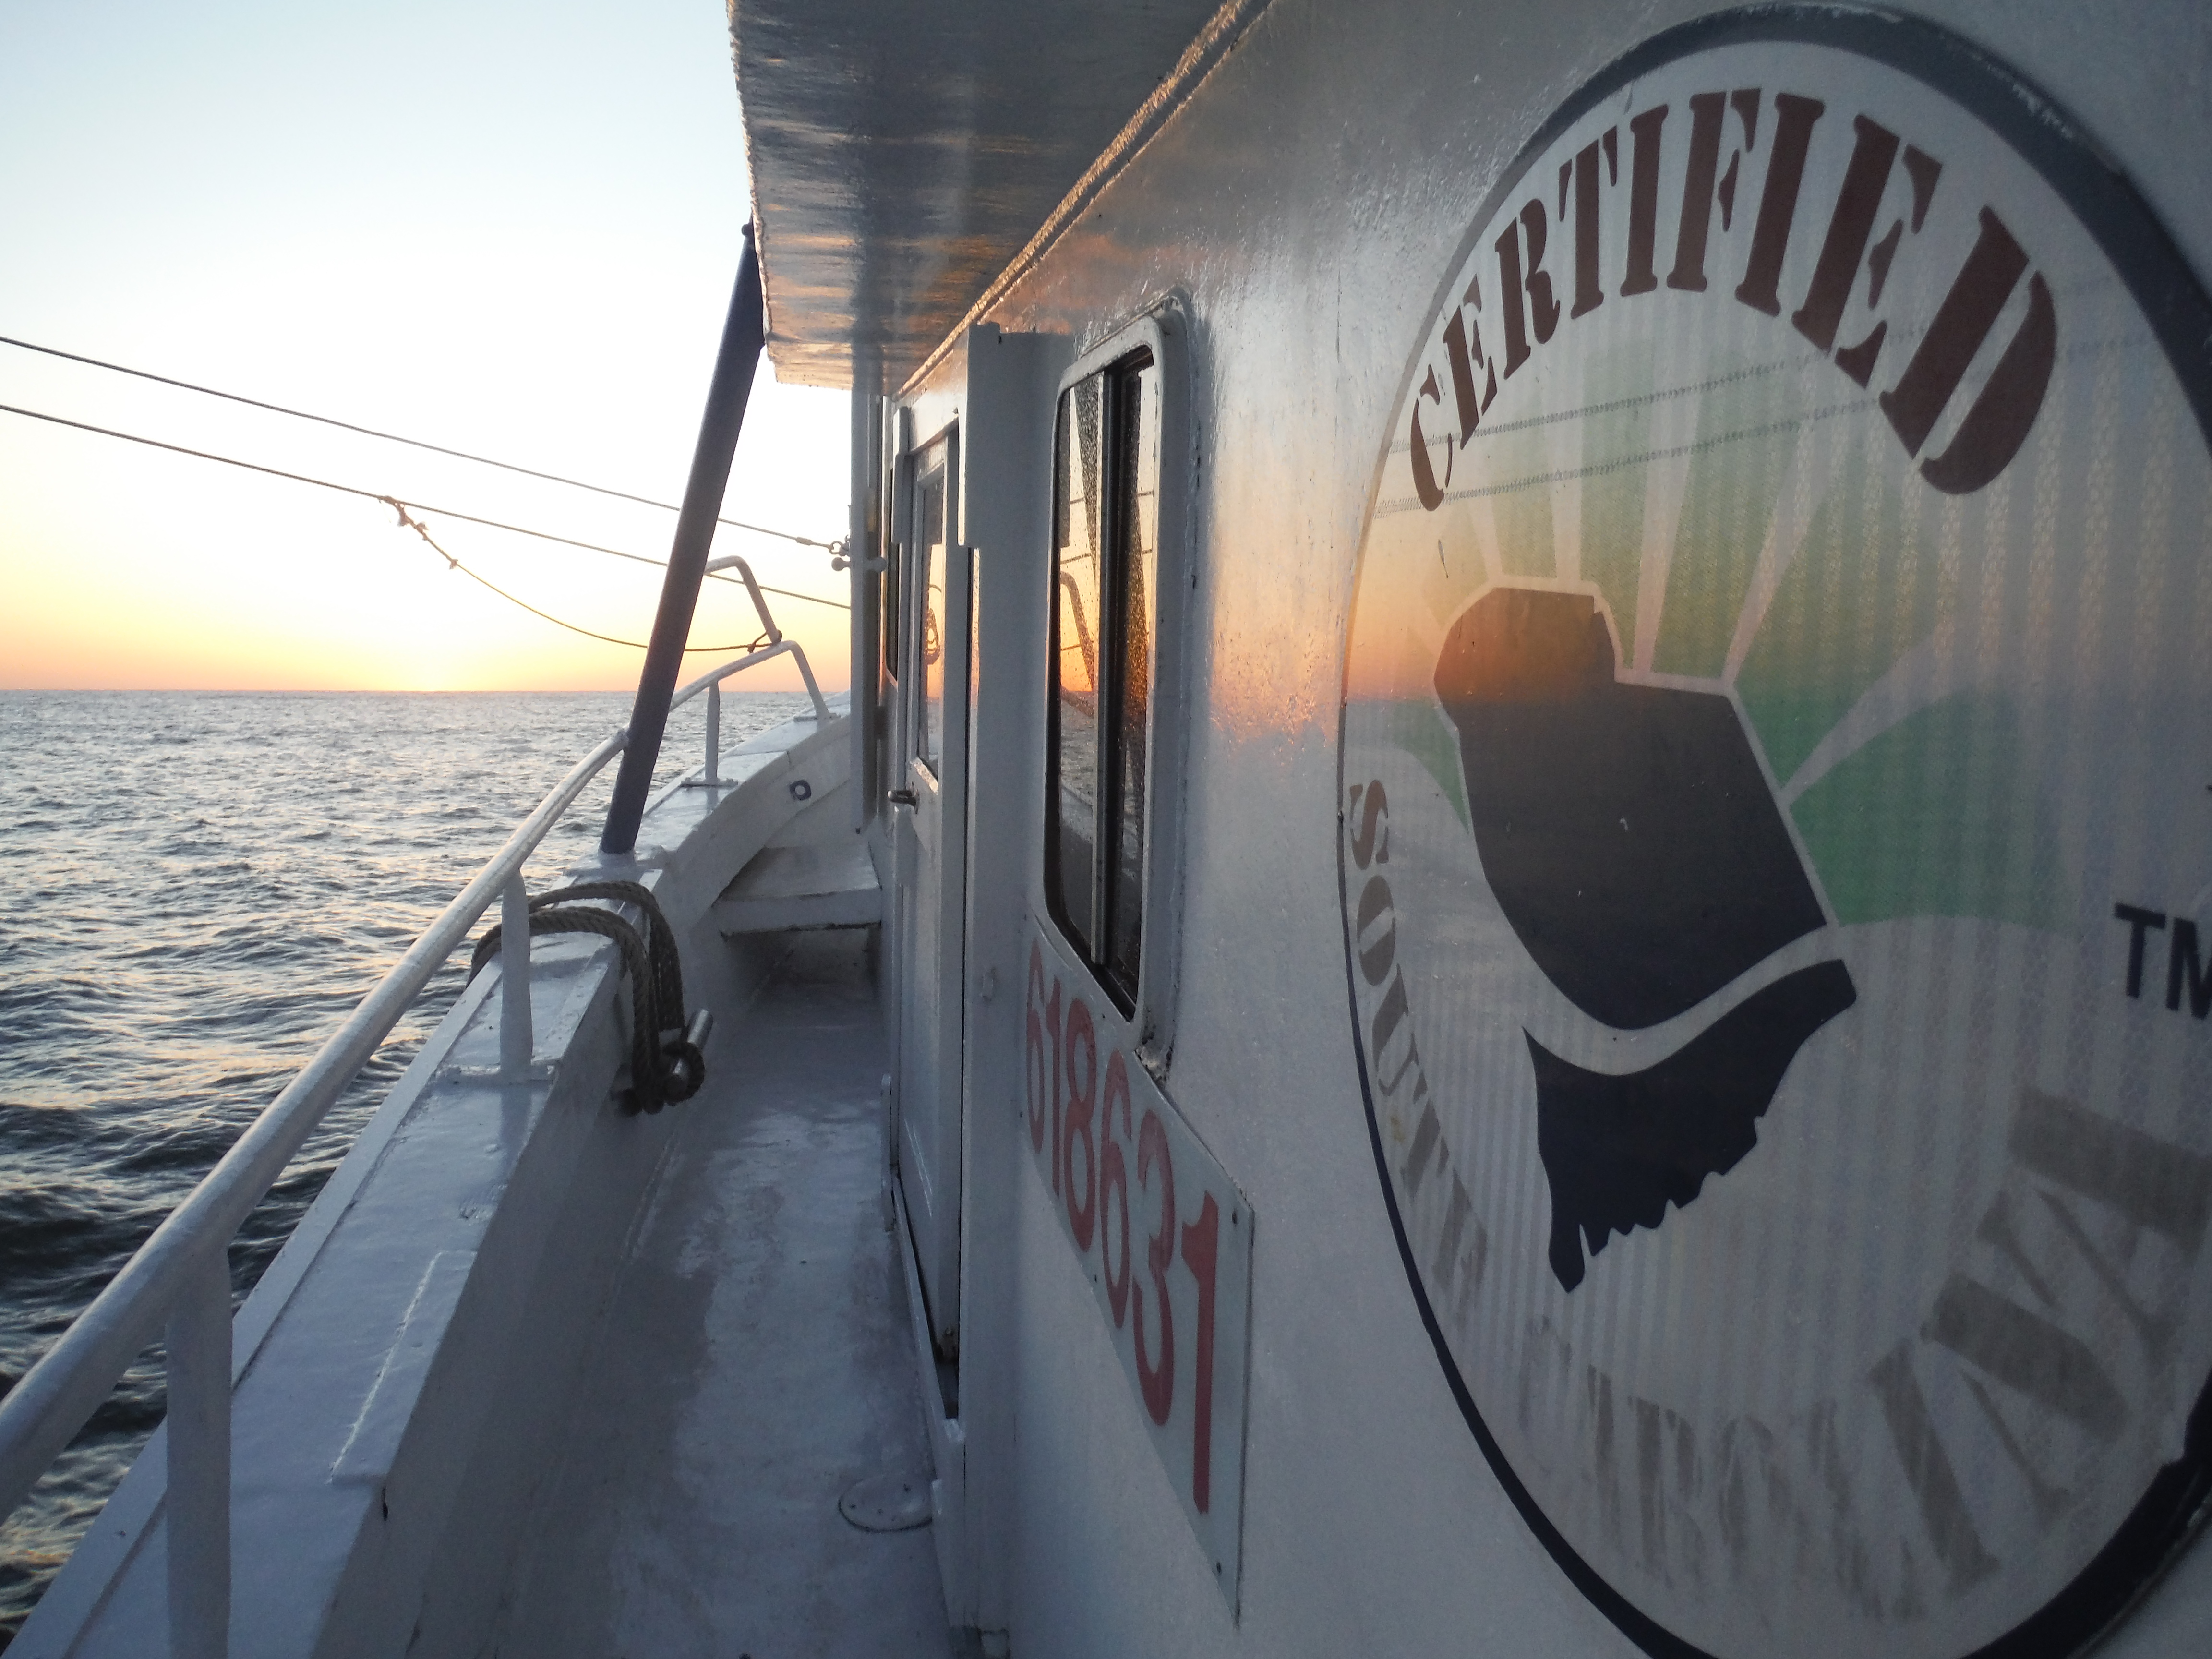 Shrimp Boats in the South - My Day as a Shrimper | Wounded